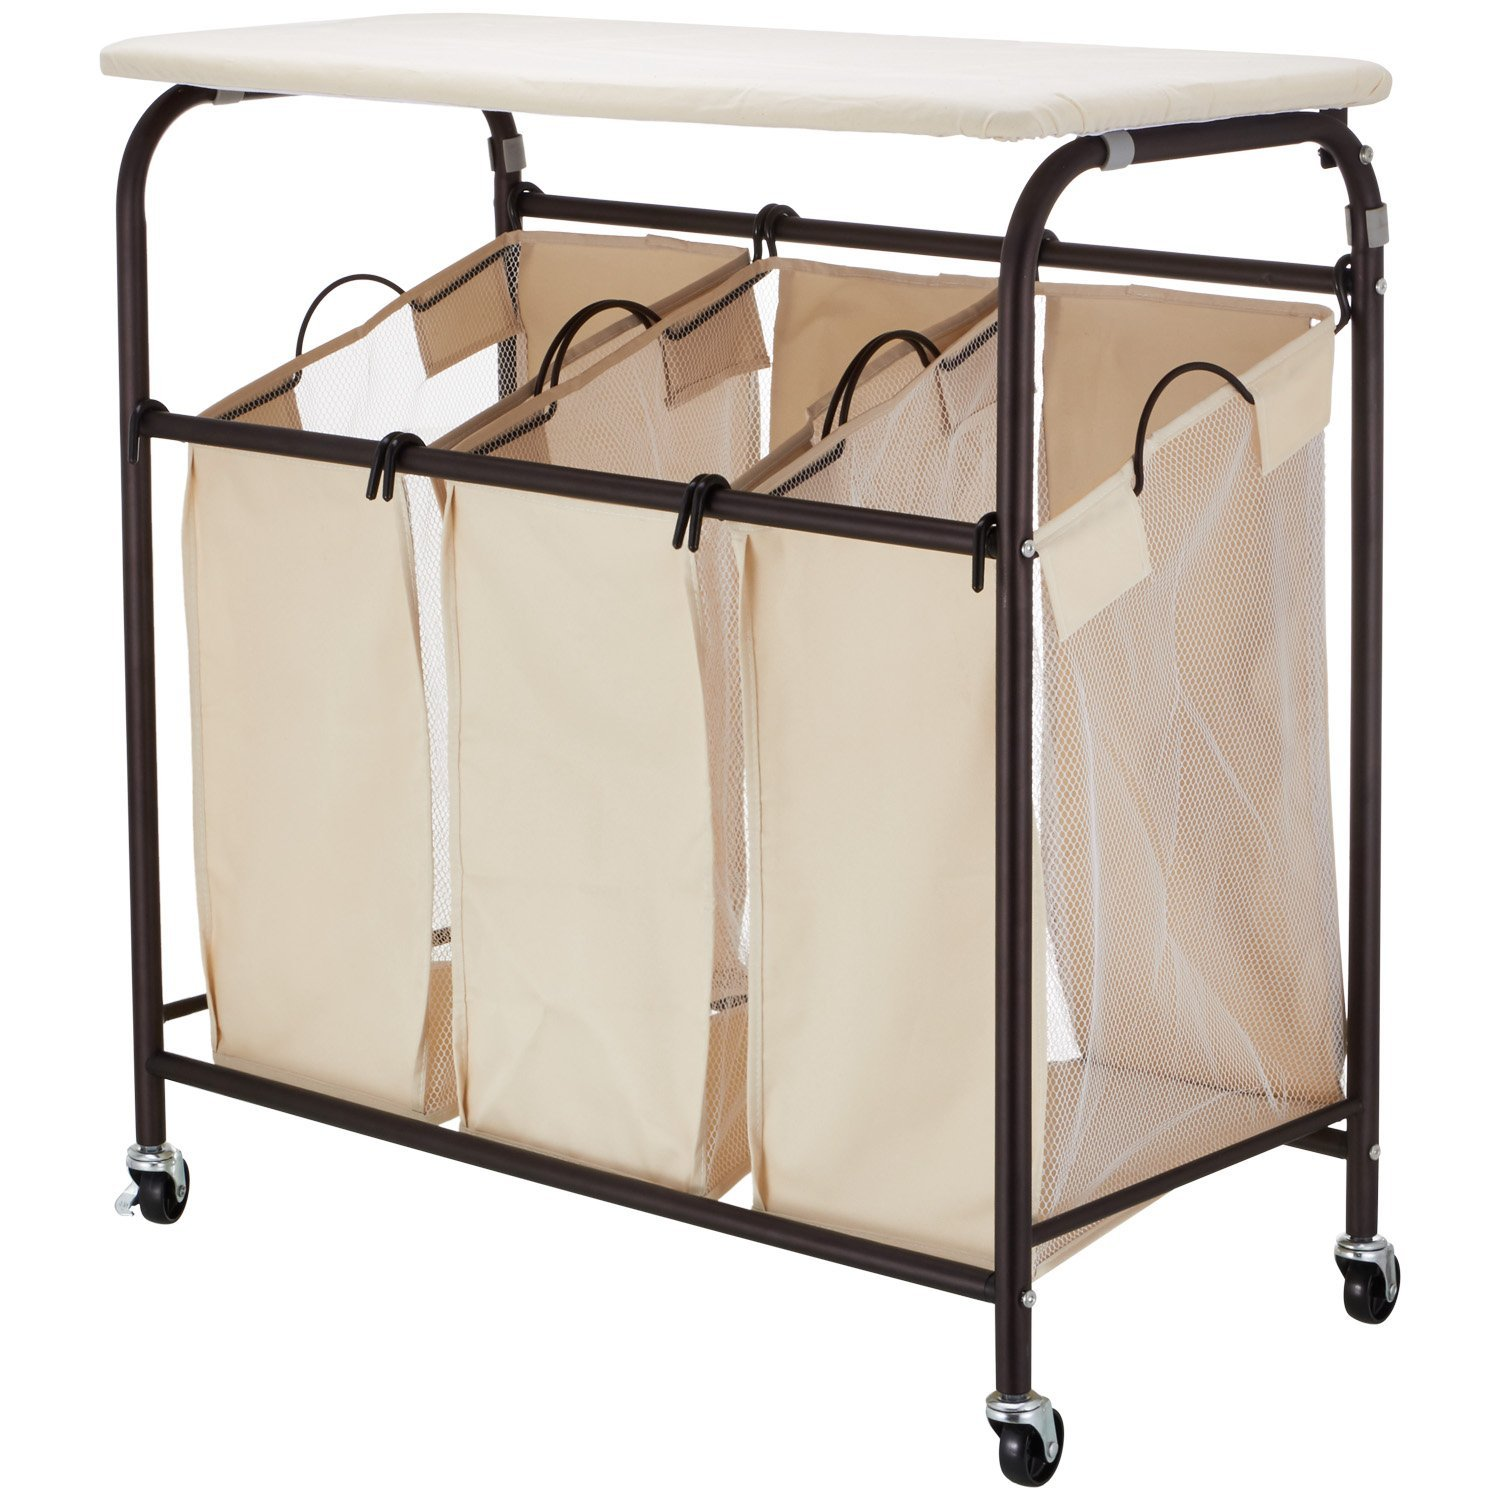 ollieroo rolling laundry sorter cart heavy duty 3 bags with ironing board